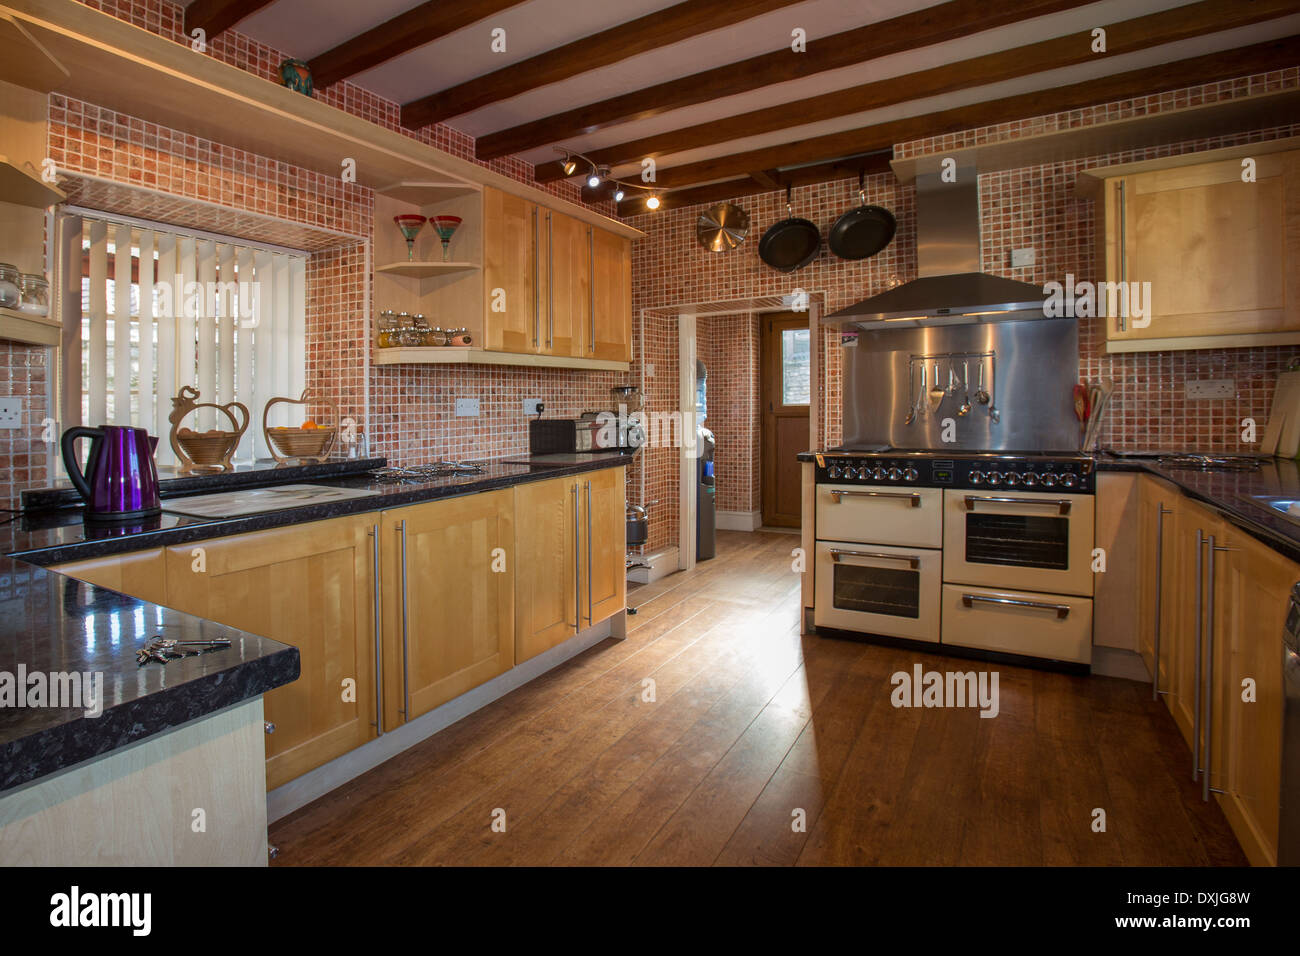 A Fitted Kitchen In A Farmhouse In Yorkshire In Northeast England.